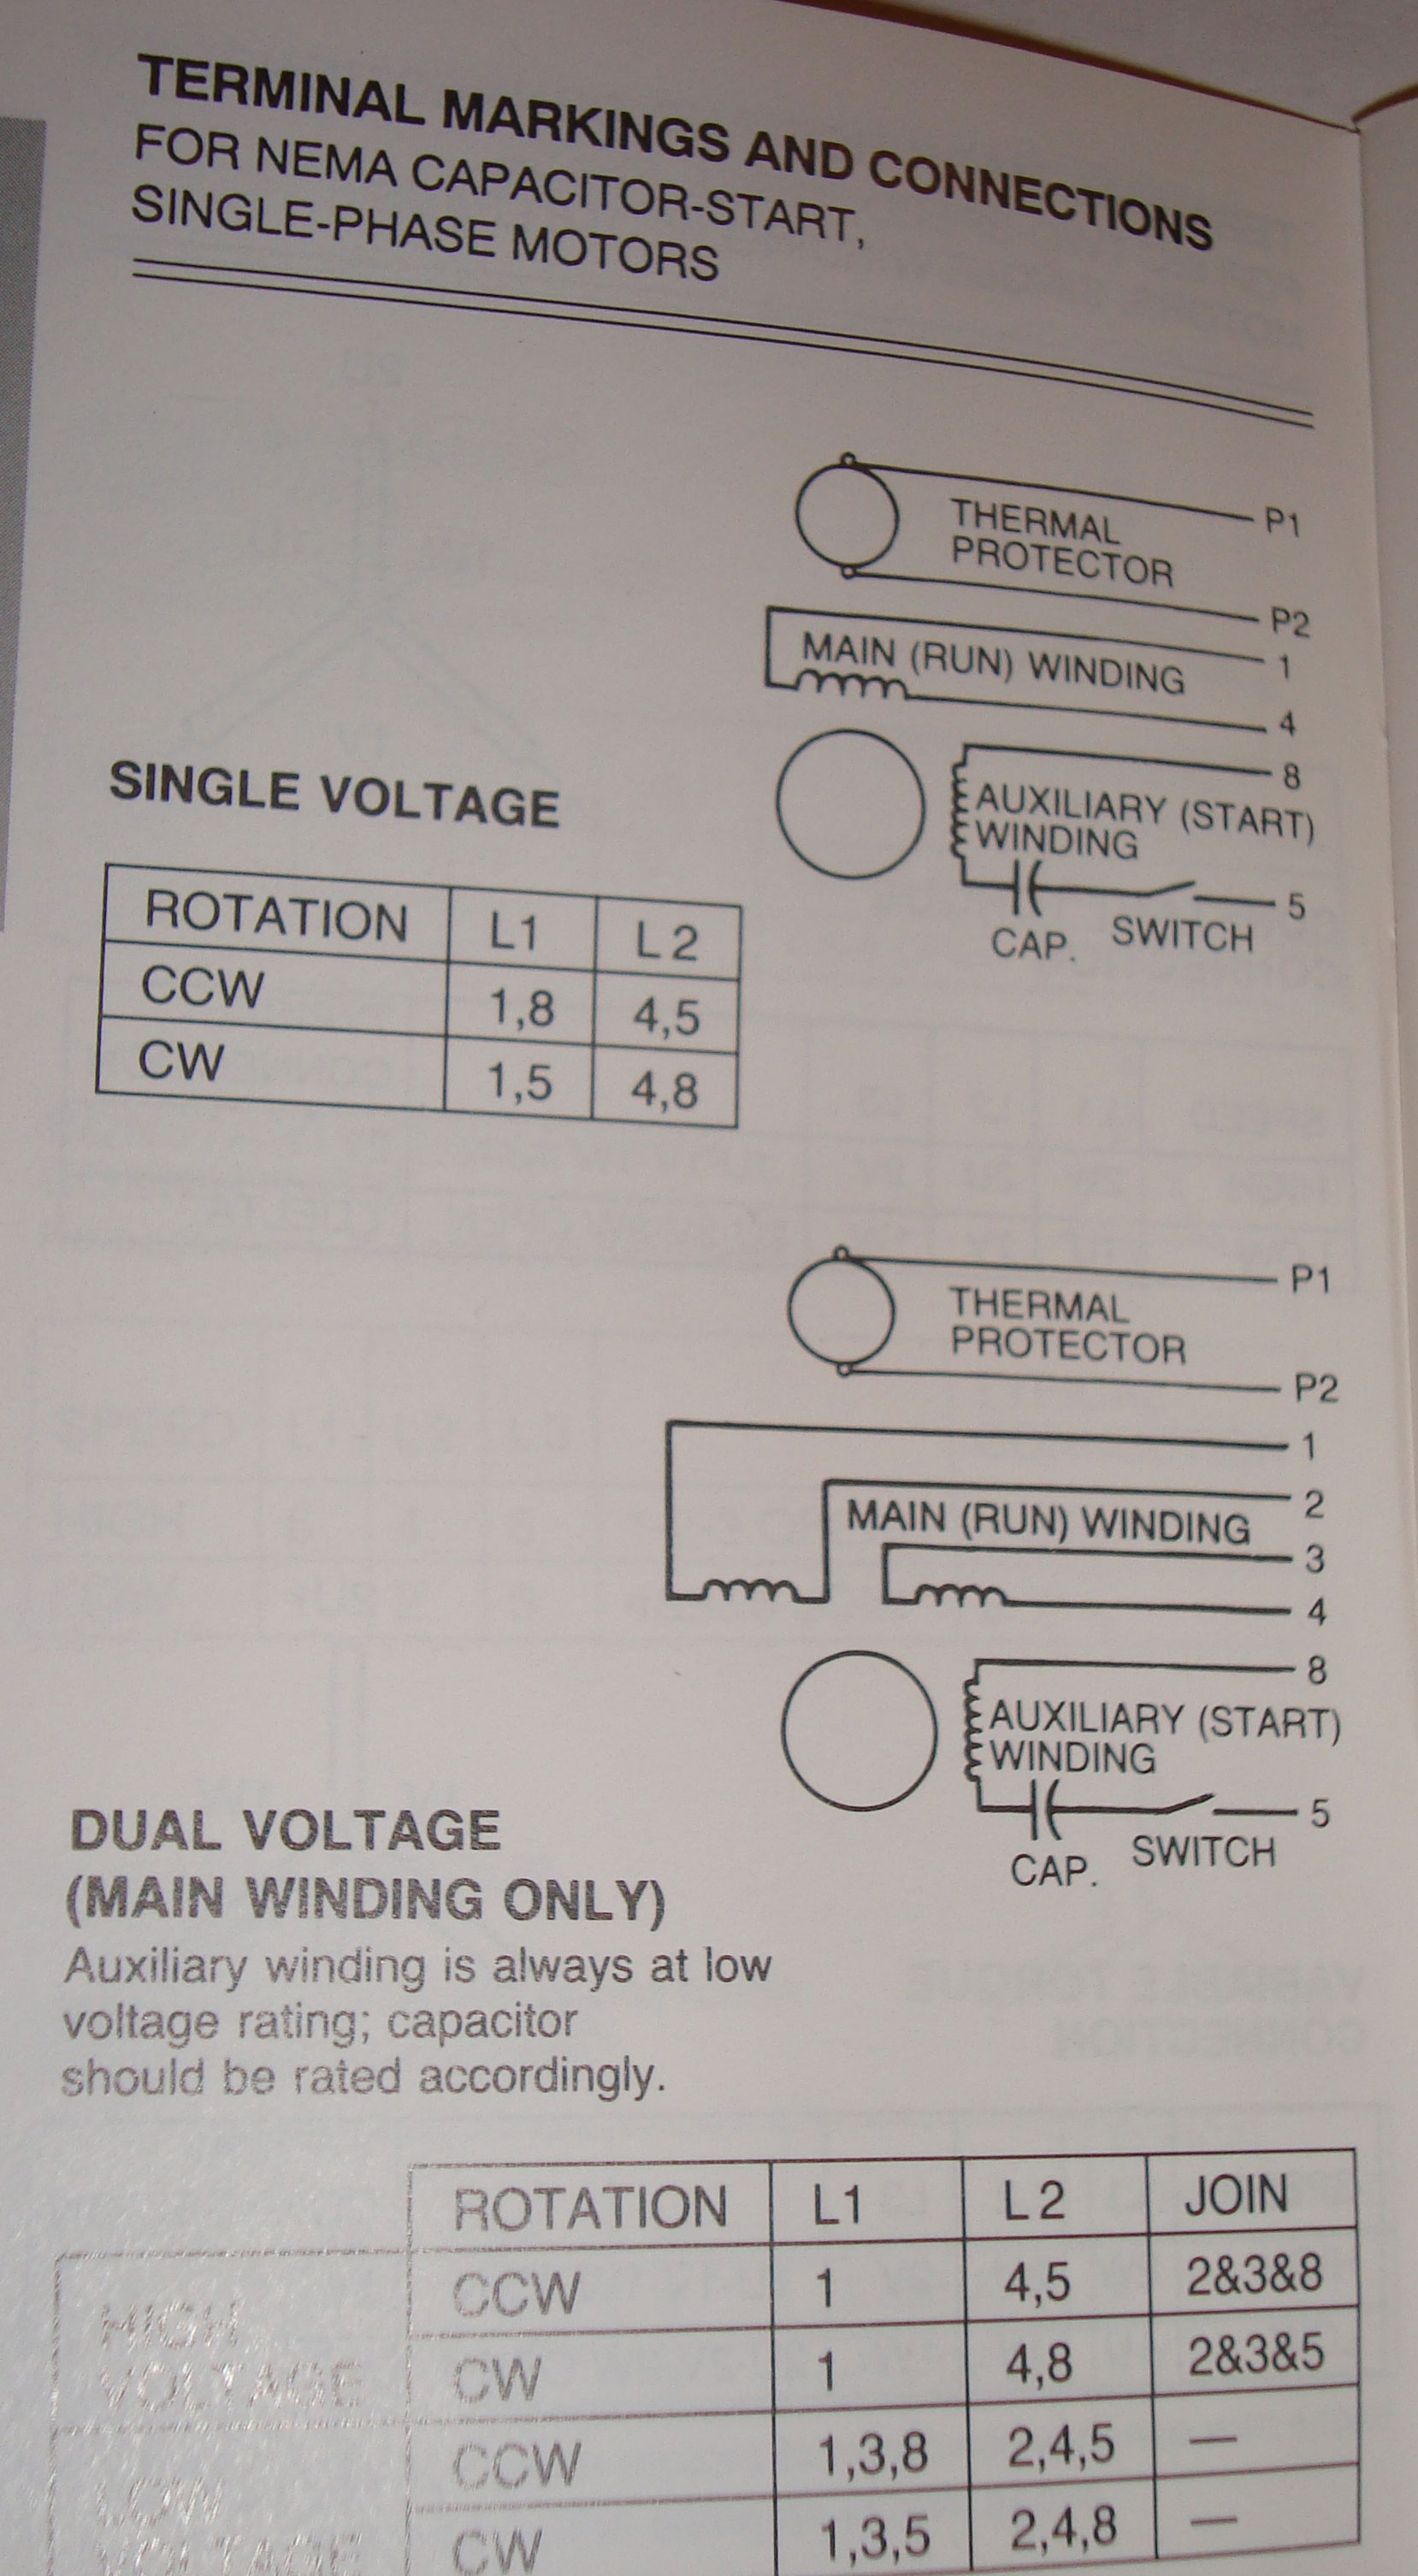 I Have A 10 Hp  1ph  230v Farm Duty Motor  I Would Like An Electrical Diagram For How The